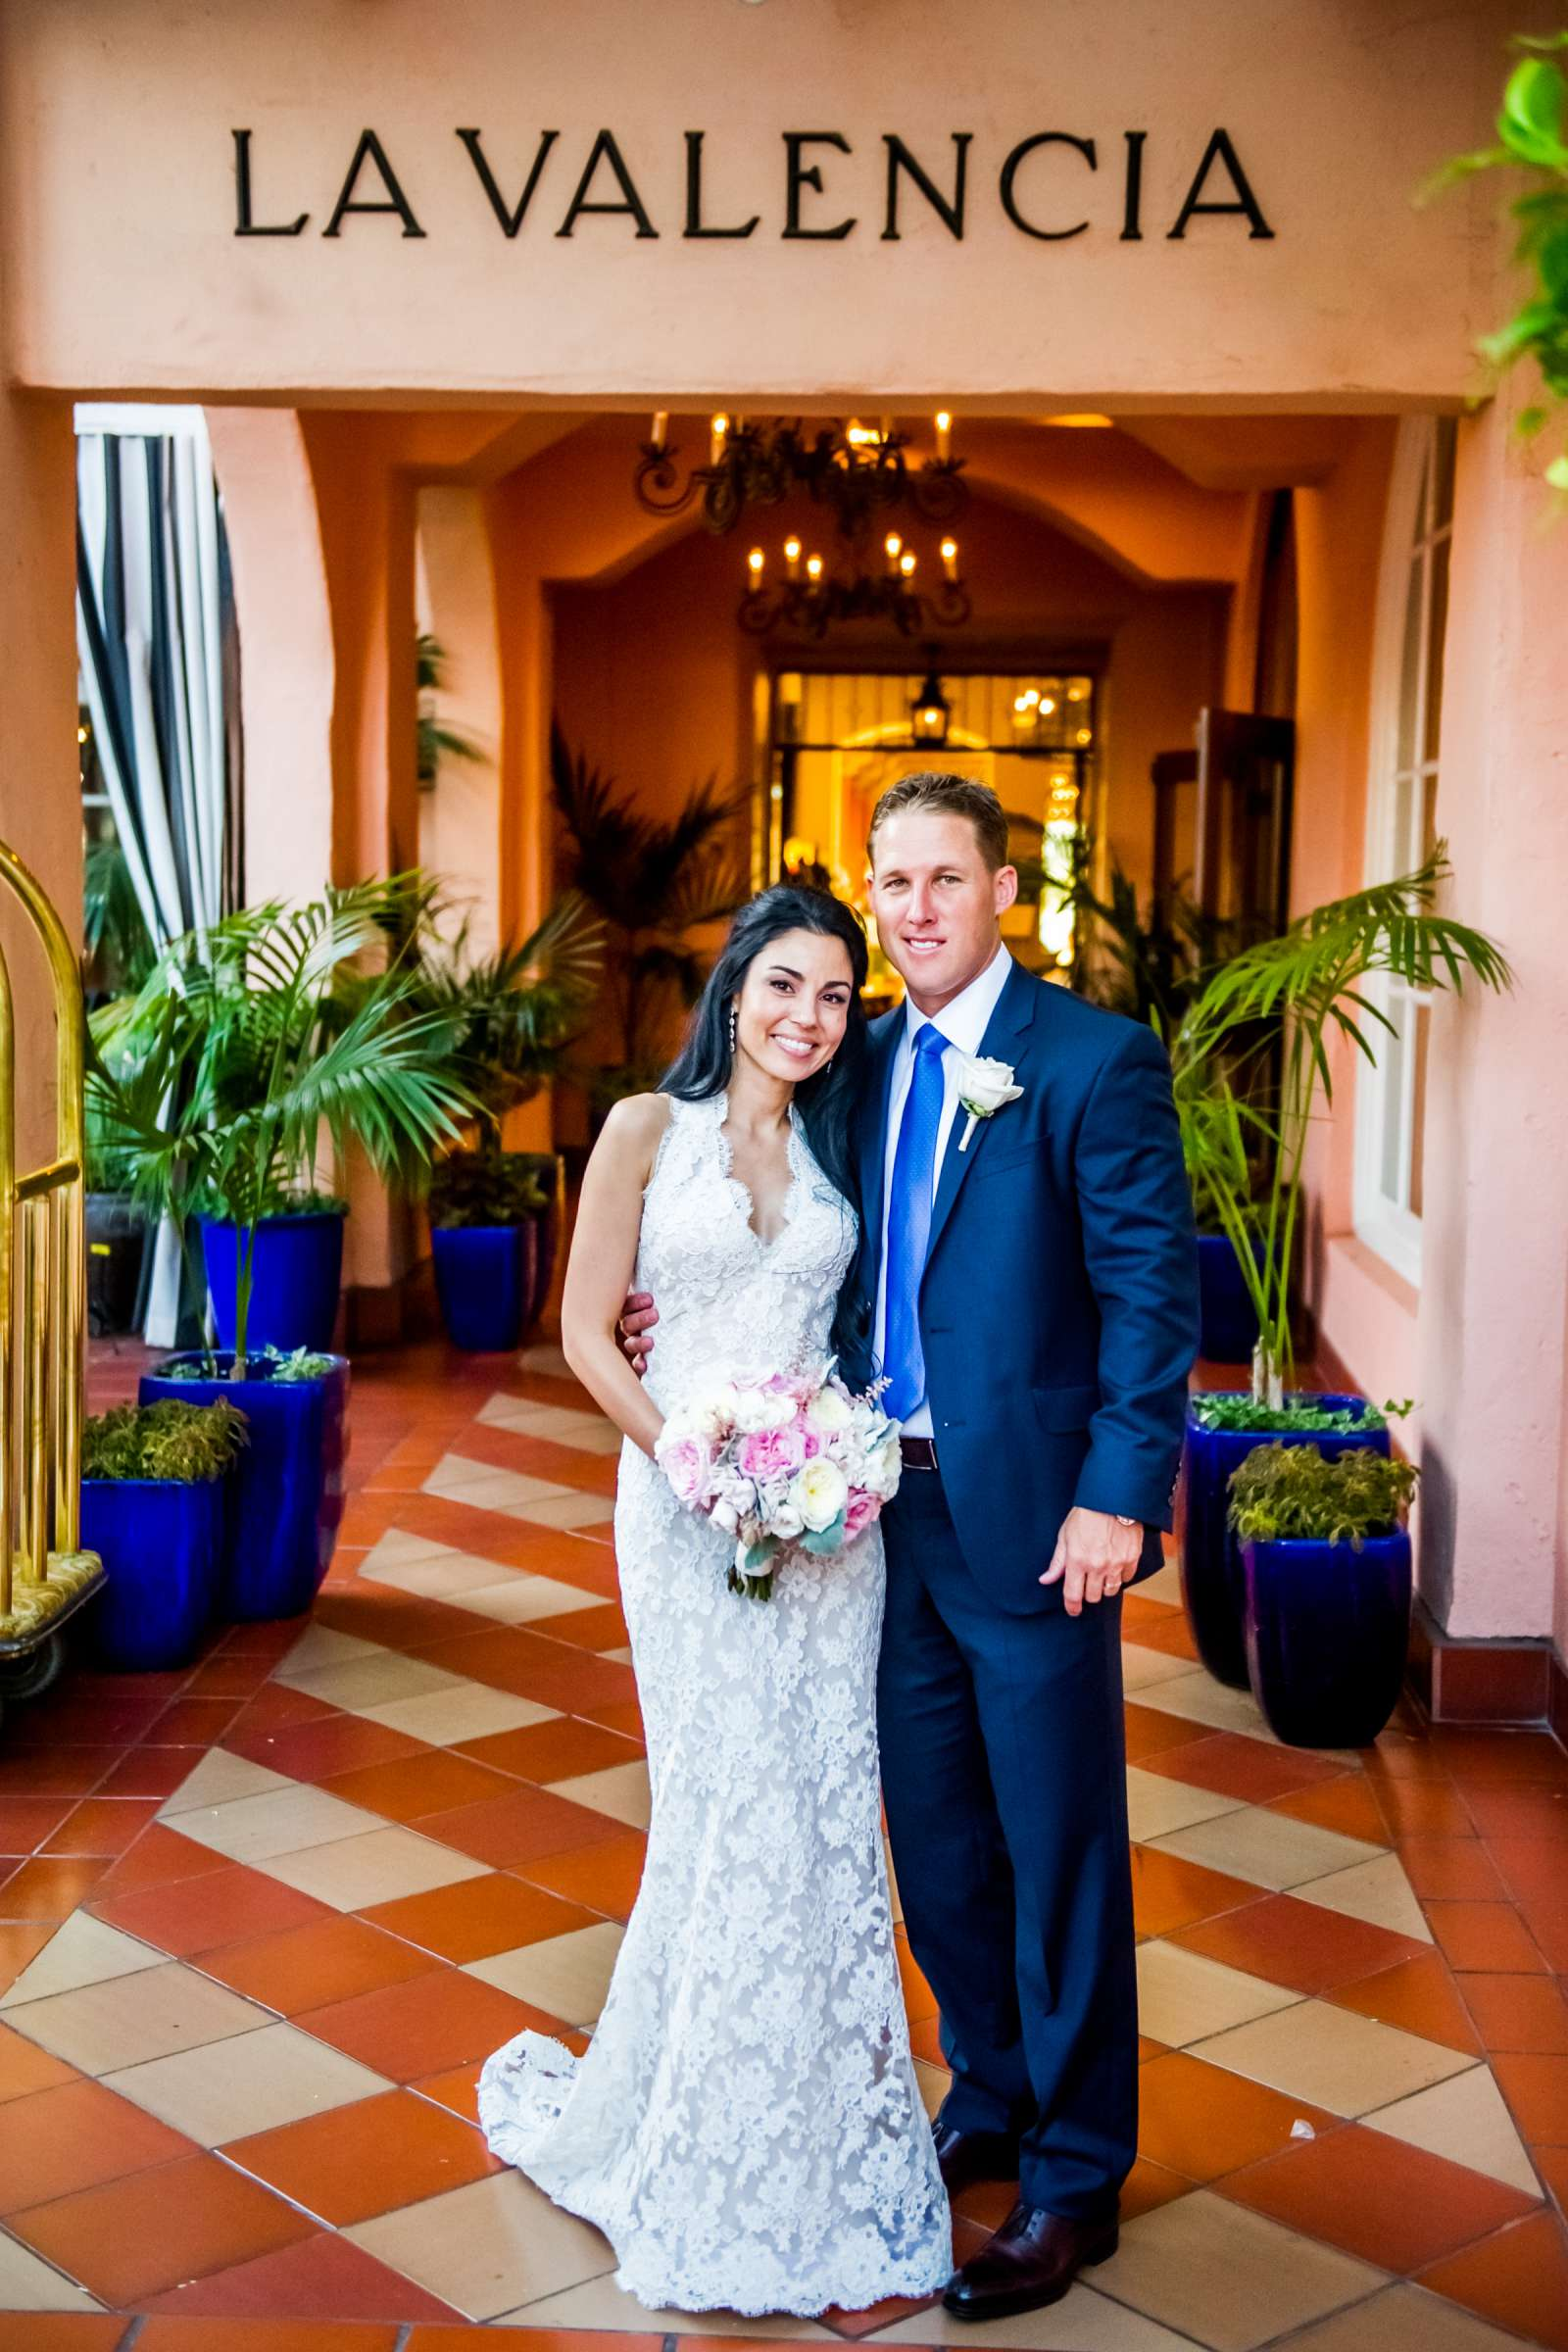 La Valencia Wedding coordinated by First Comes Love Weddings & Events, Lea and Nick Wedding Photo #7 by True Photography